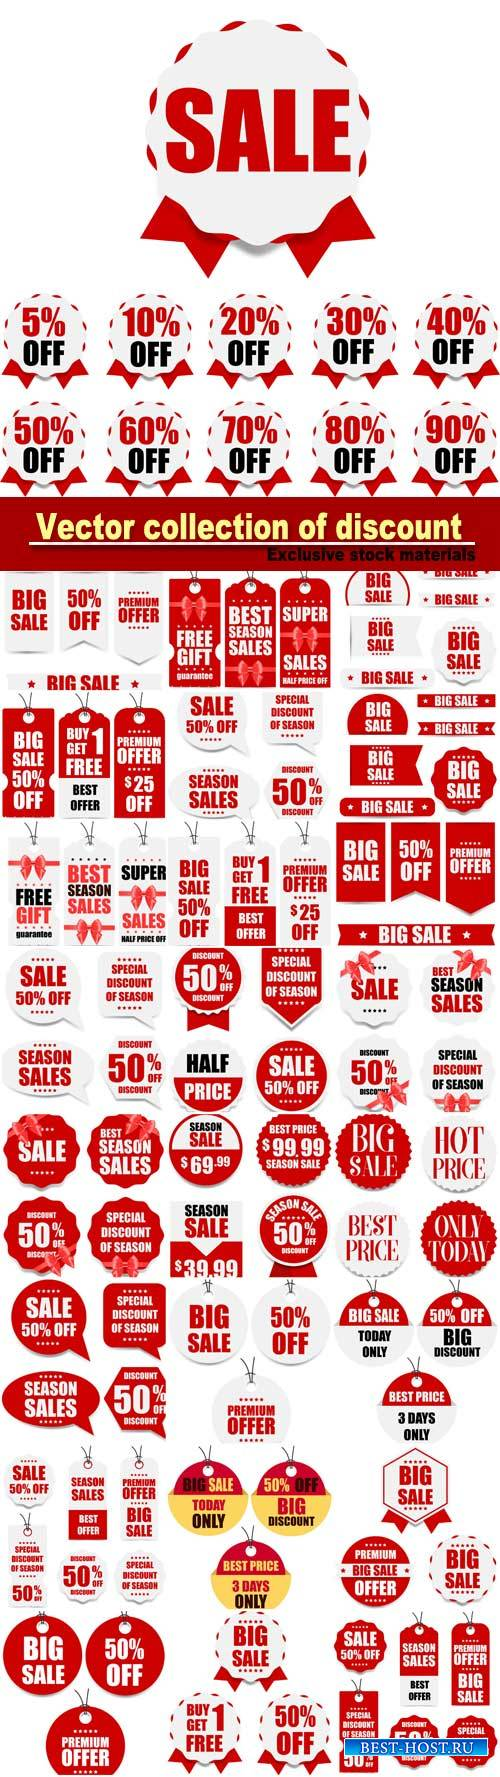 Vector collection of discount, banners and stickers